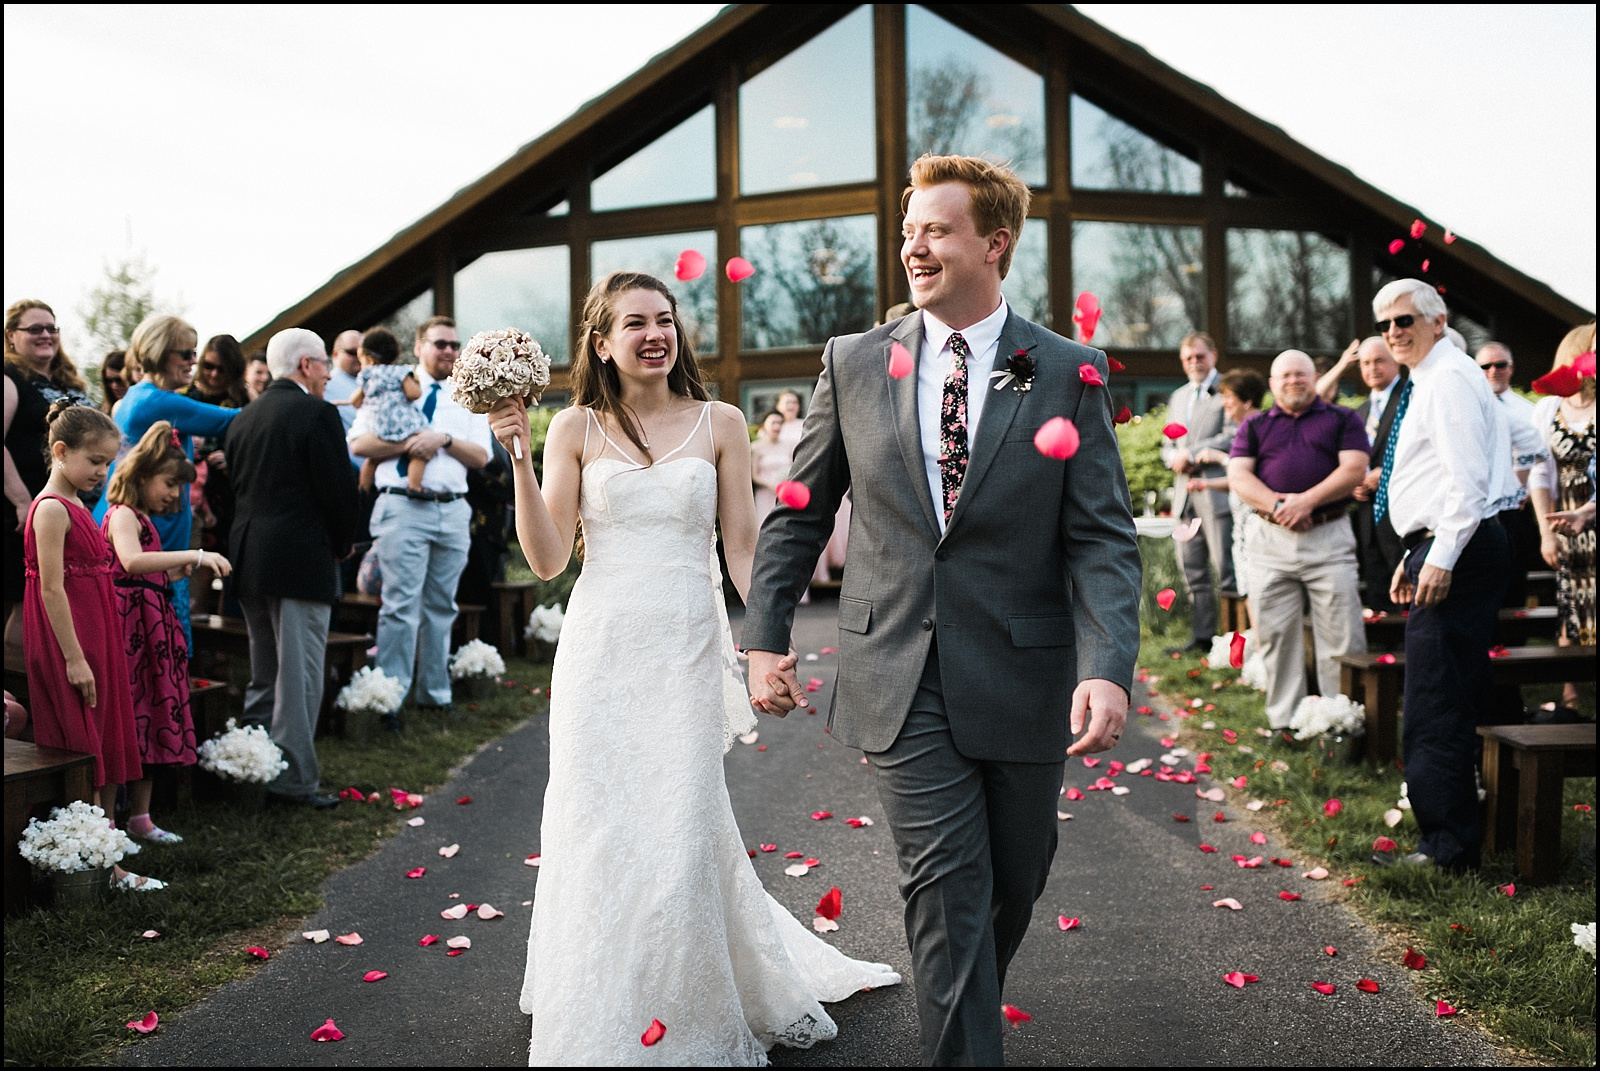 Awesome flower exit at outdoor wedding in St Louis